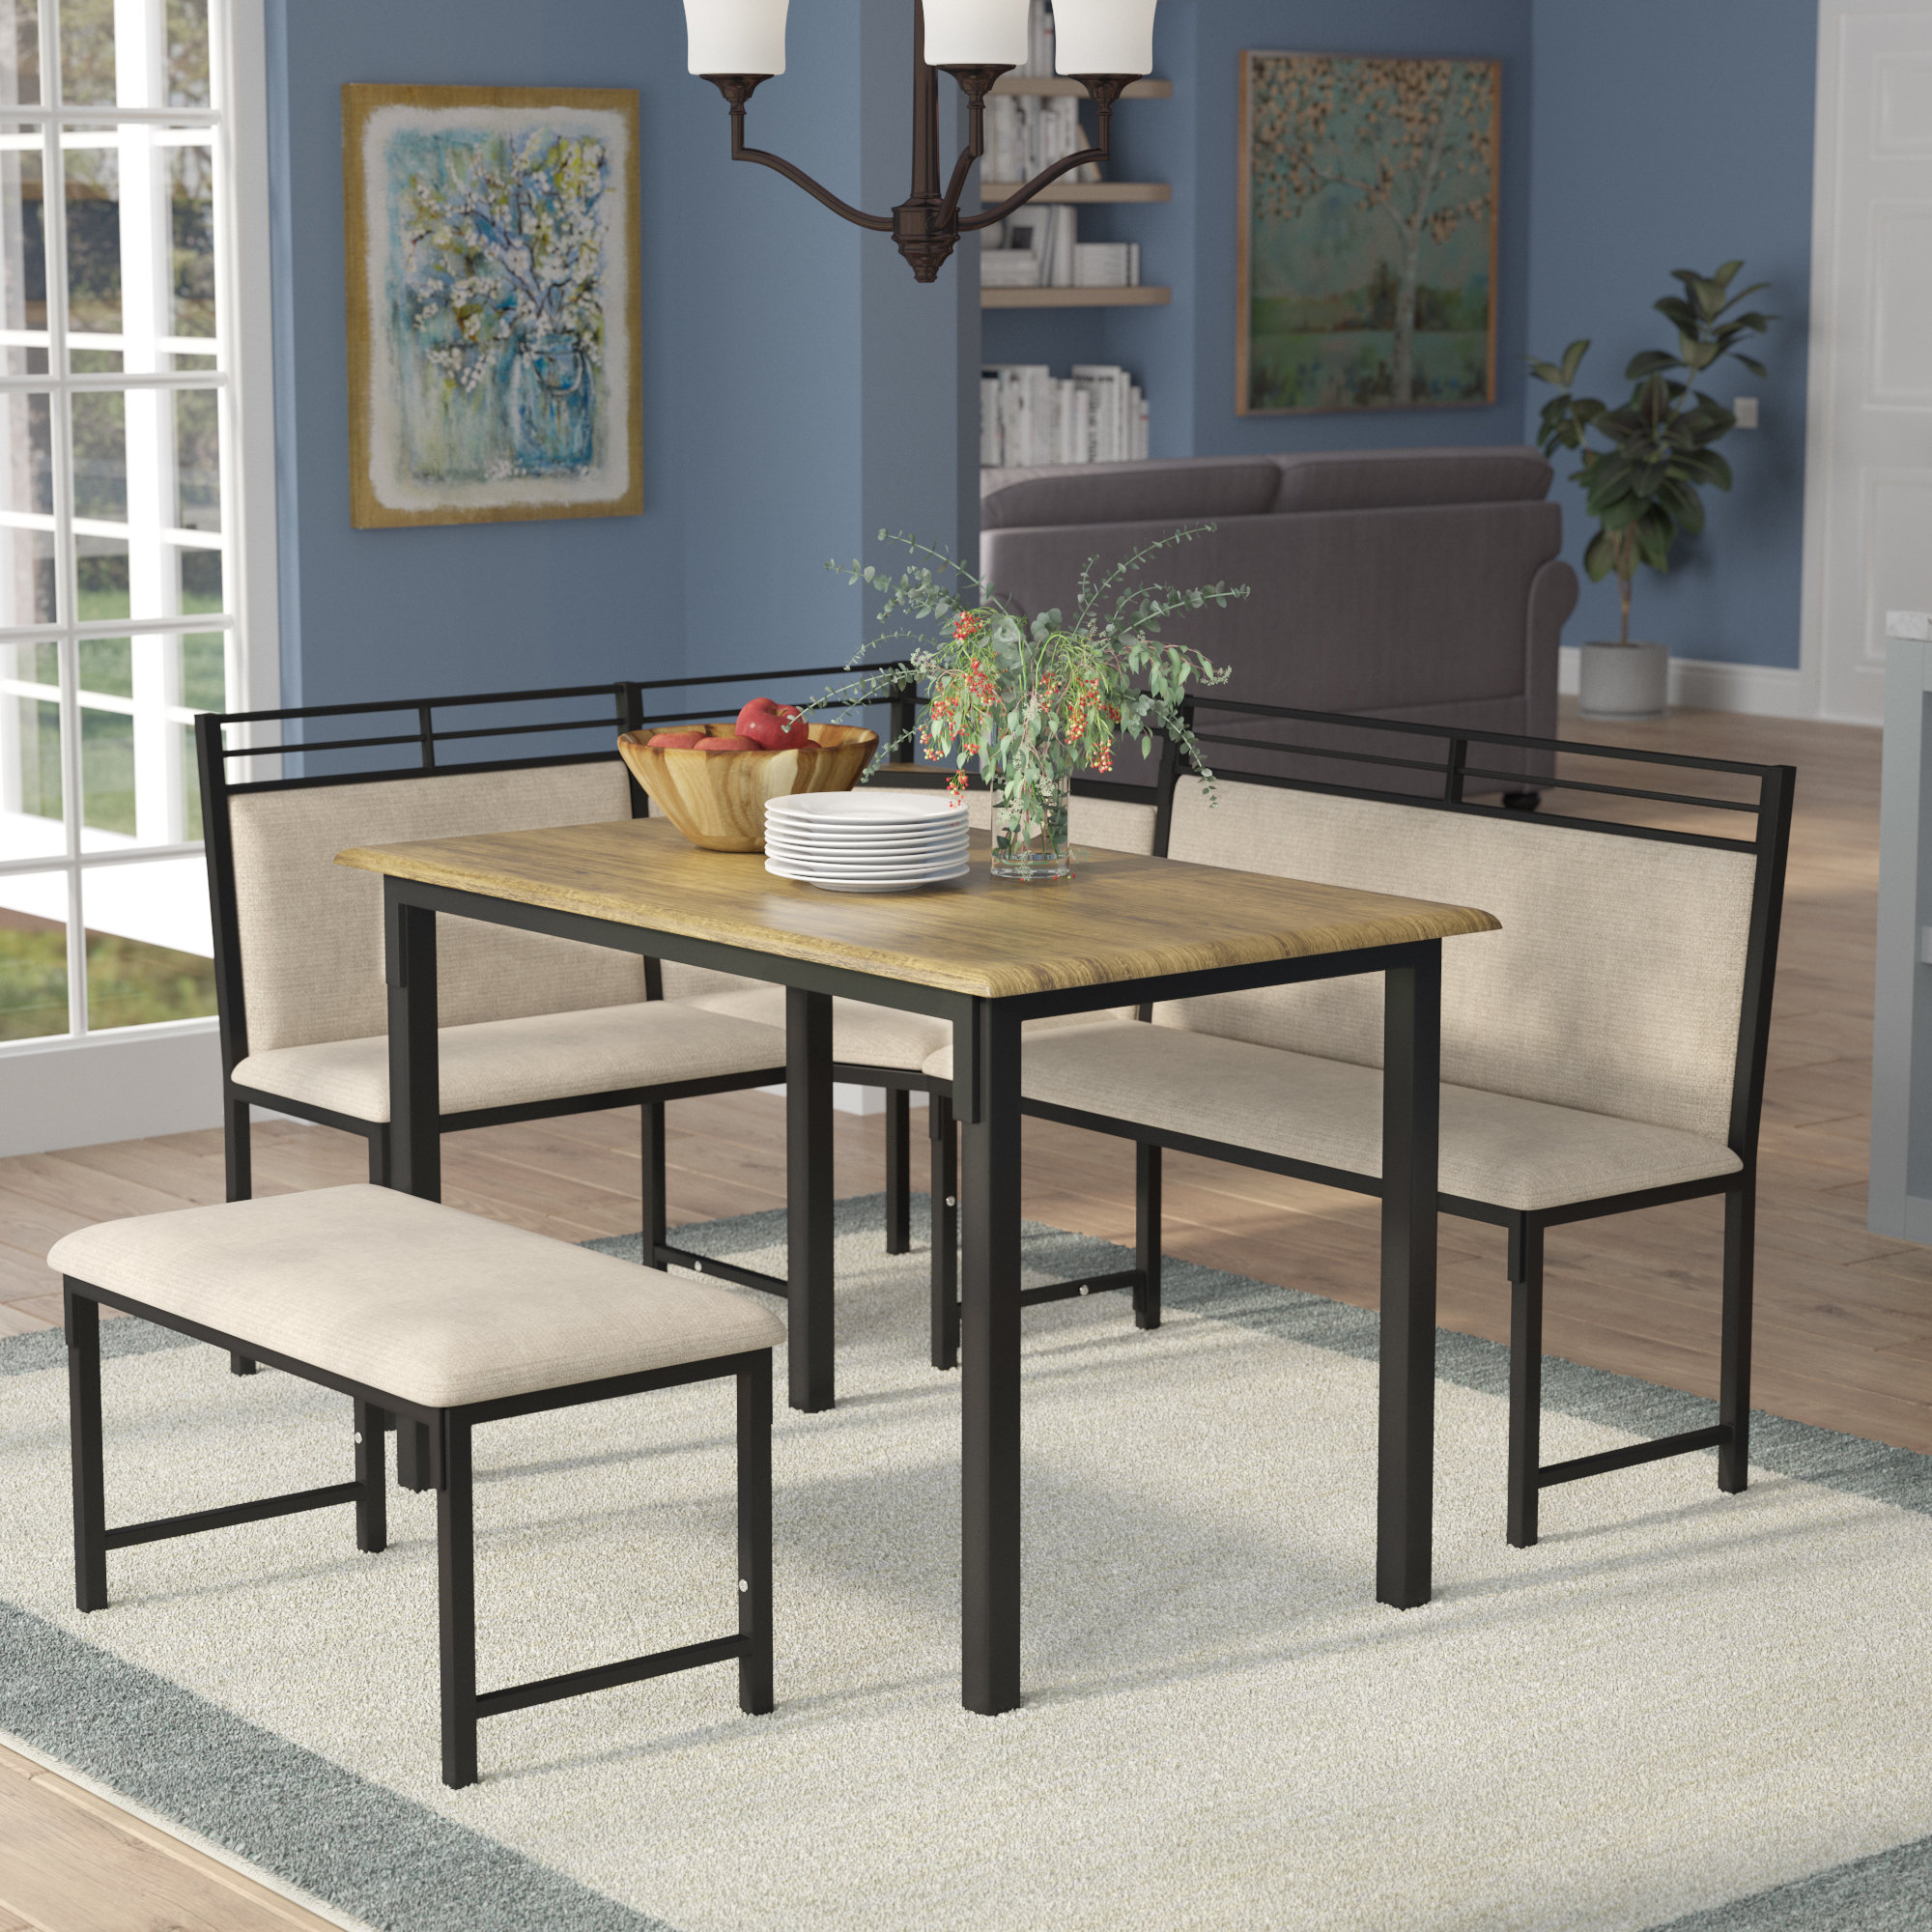 Red Barrel Studio Moonachie Corner 3 Piece Dining Set & Reviews intended for Widely used Bearden 3 Piece Dining Sets